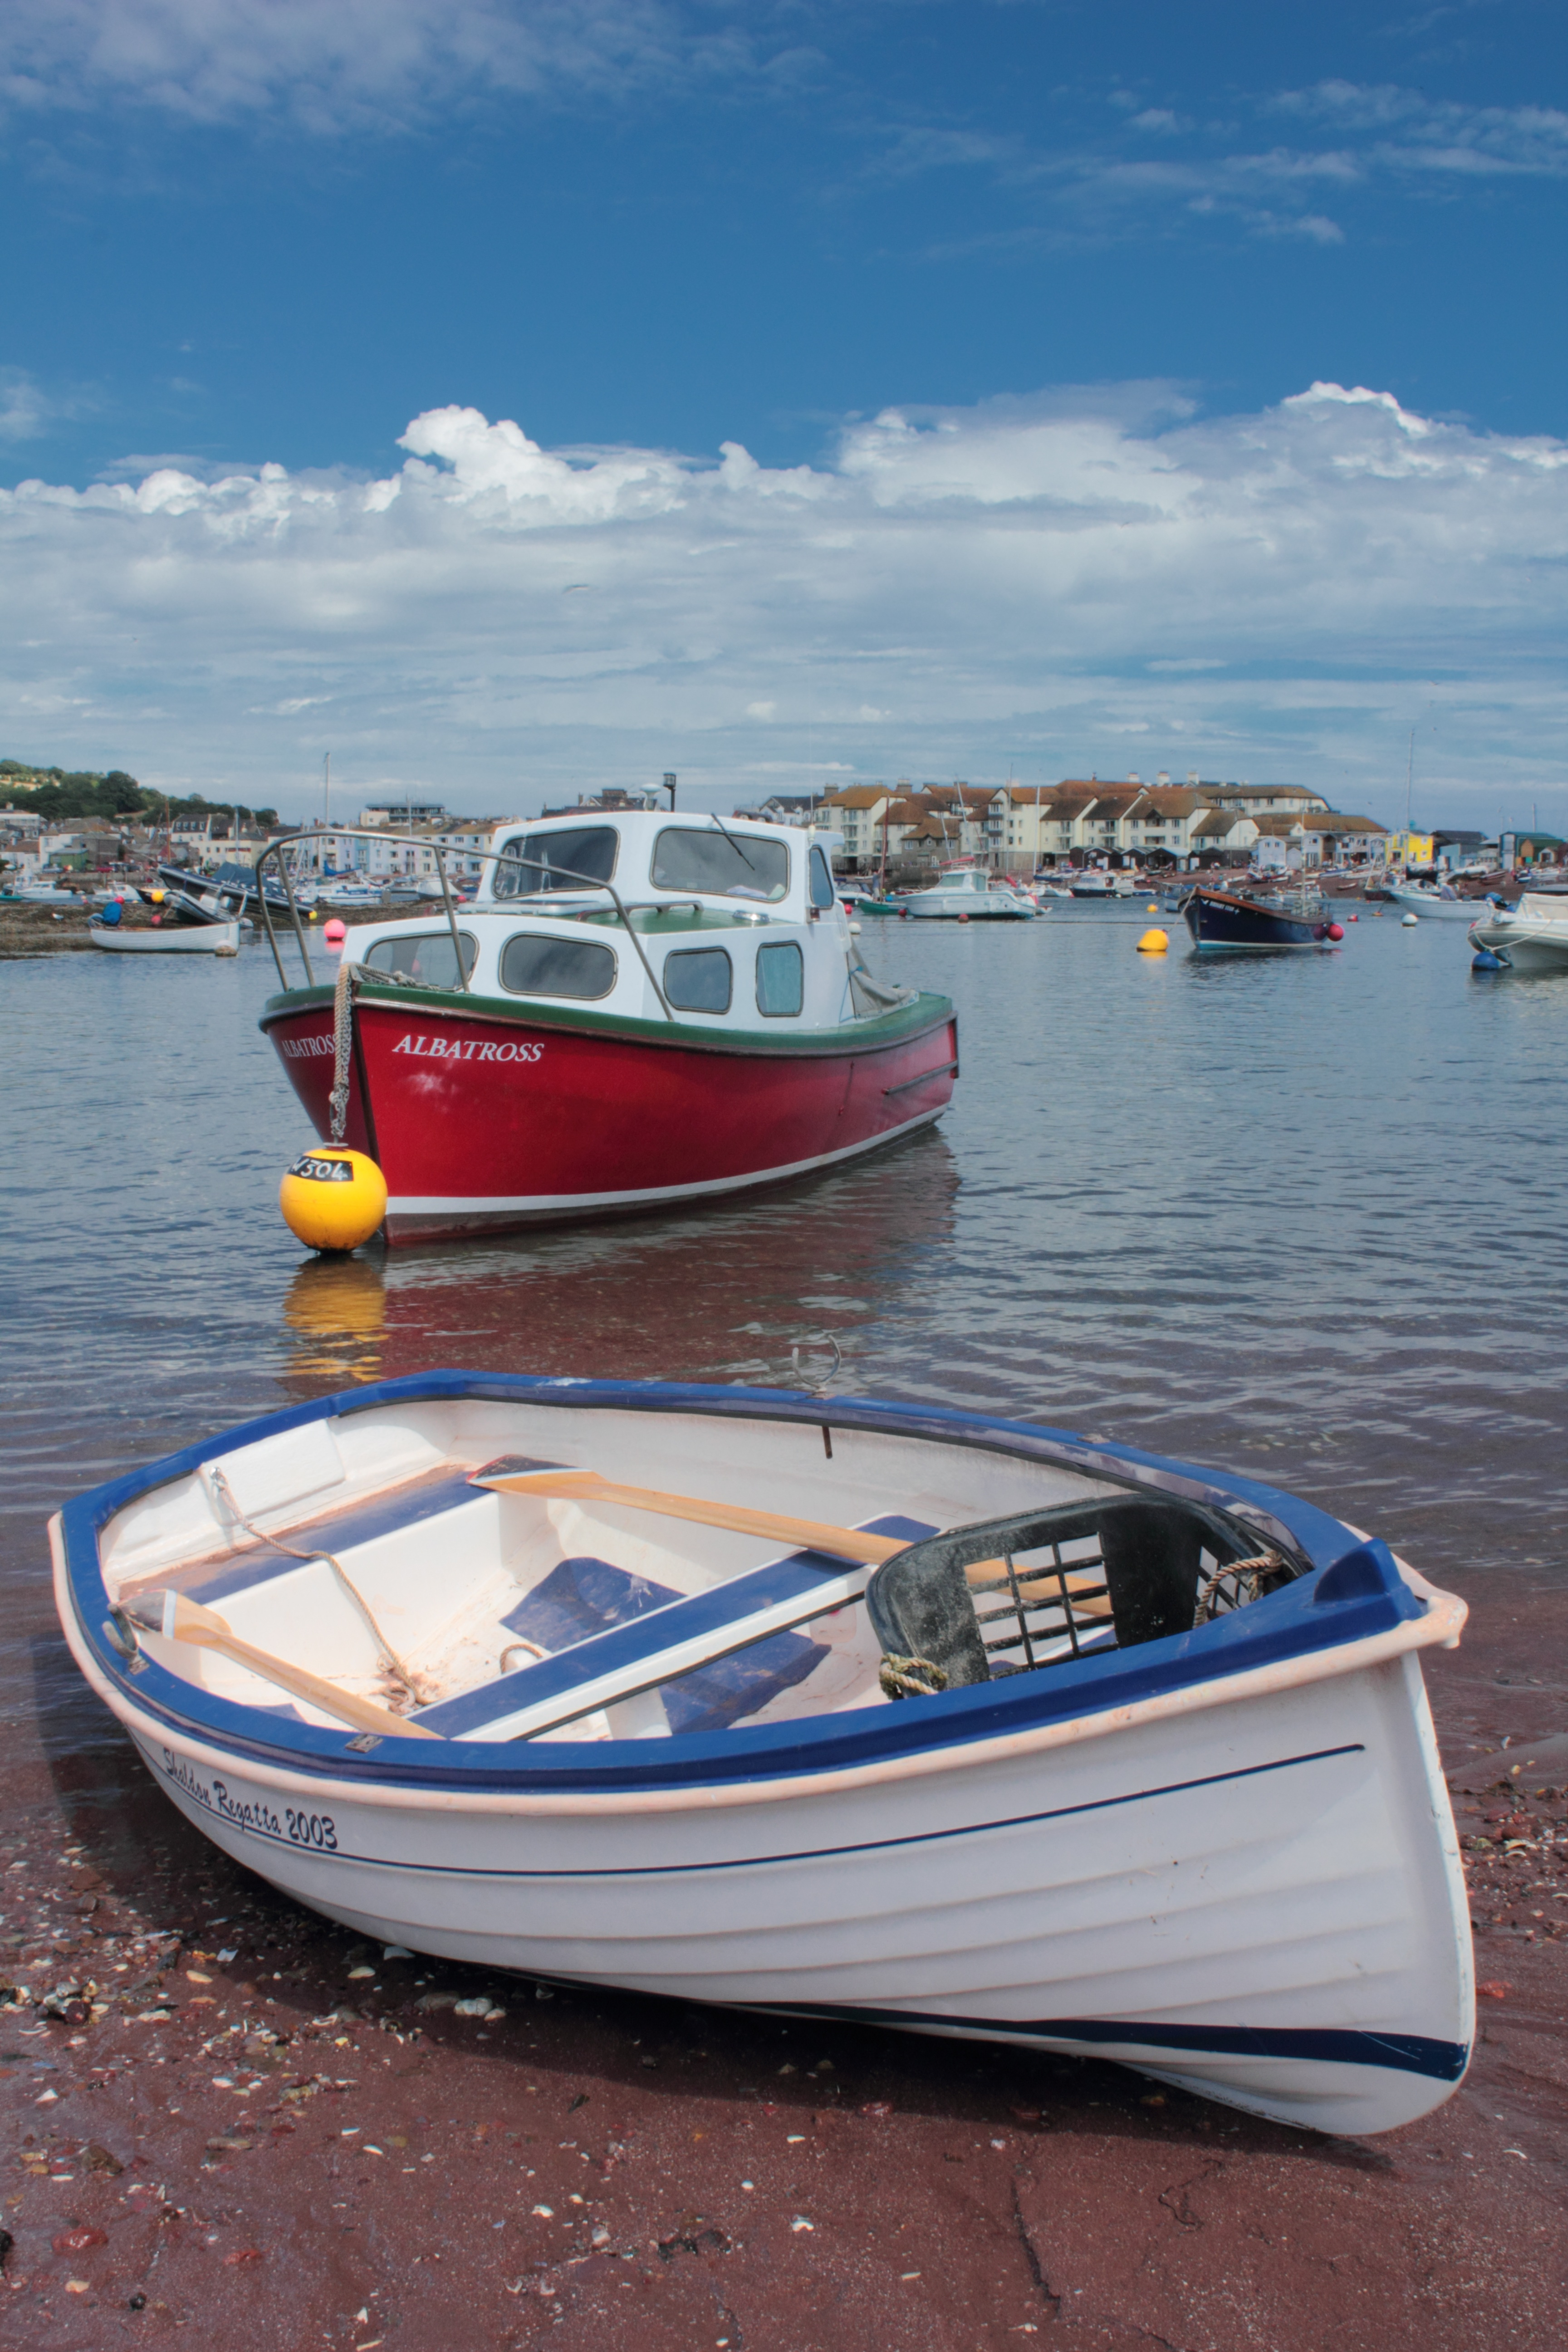 Boats in the harbour photo